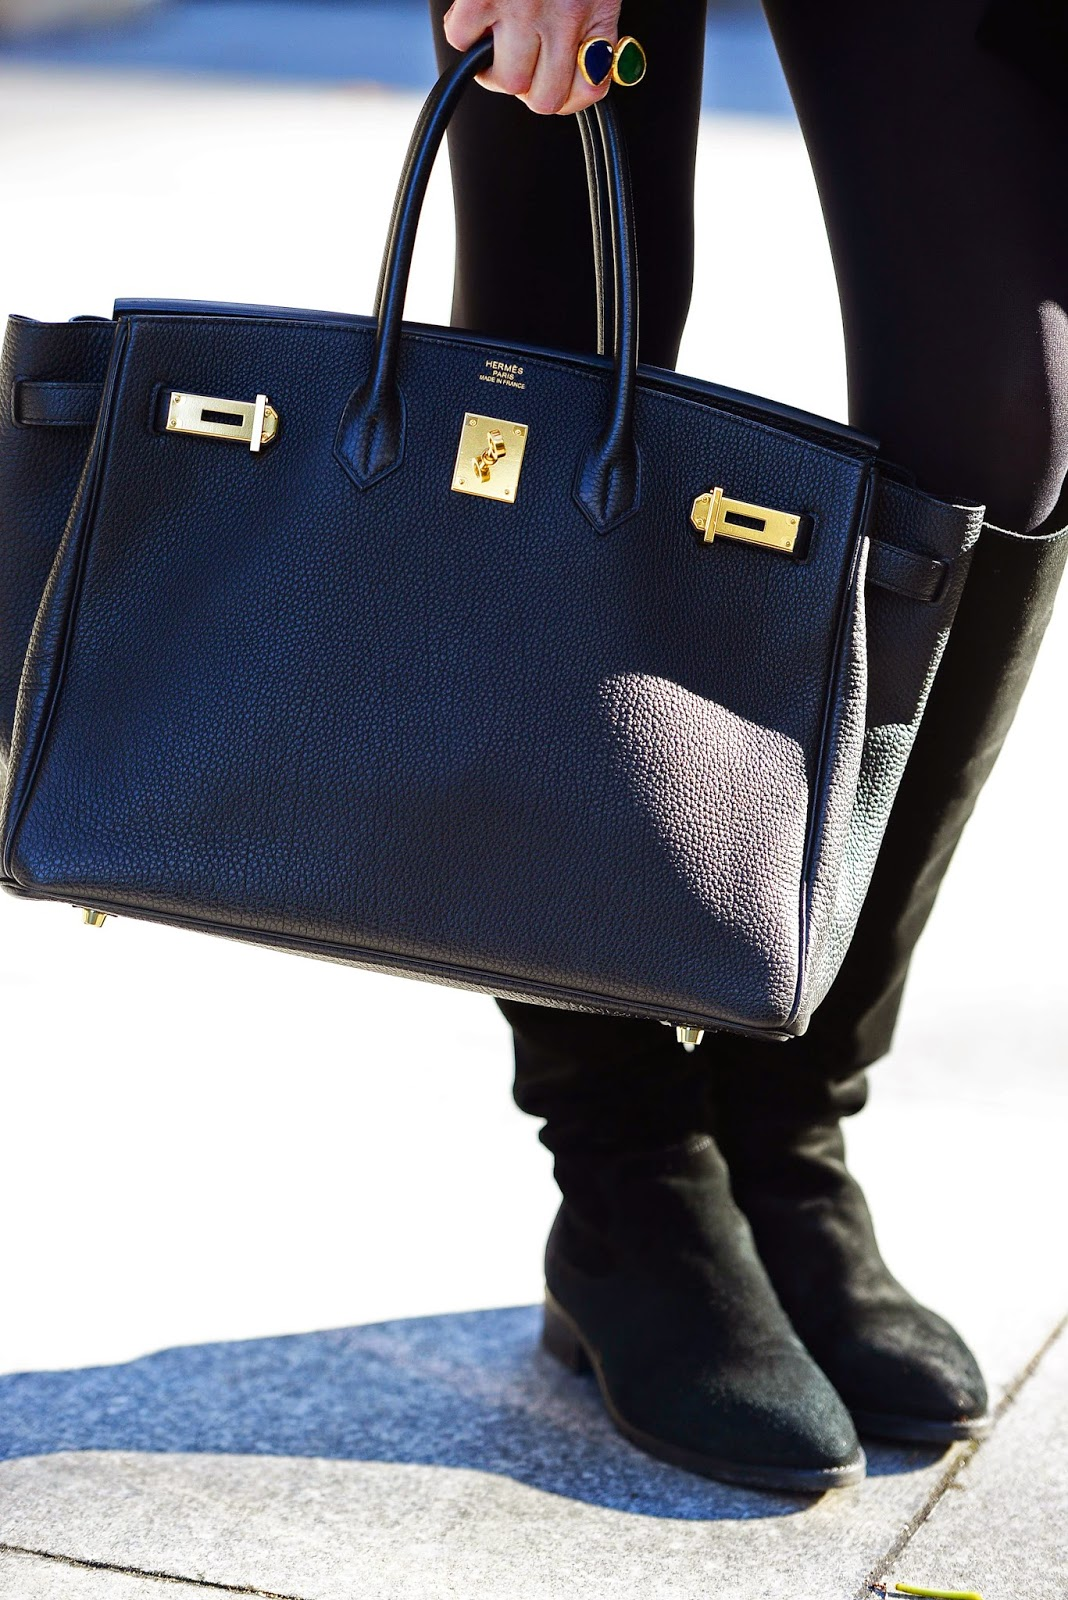 hermes 35cm blue ocean togo birkin bag with gold hardware